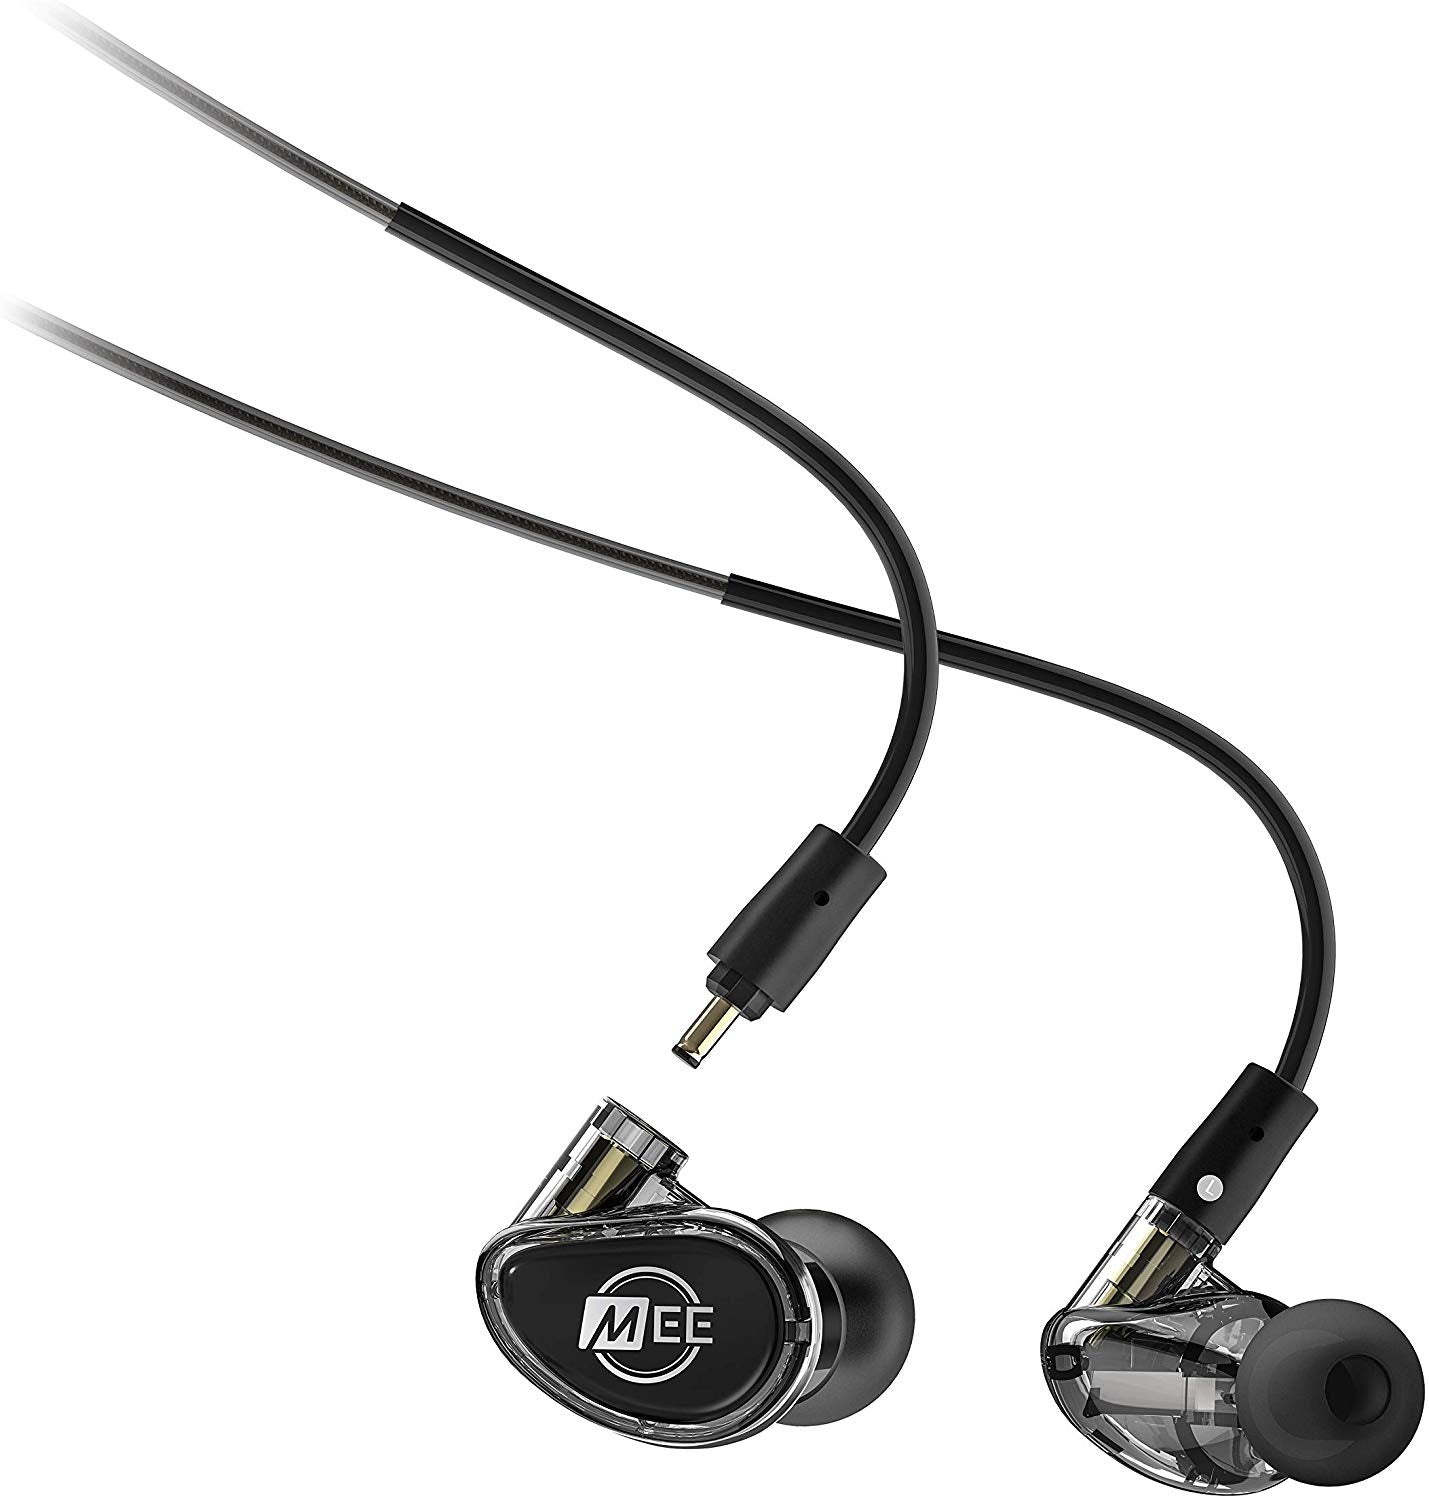 Mee Audio MX Series